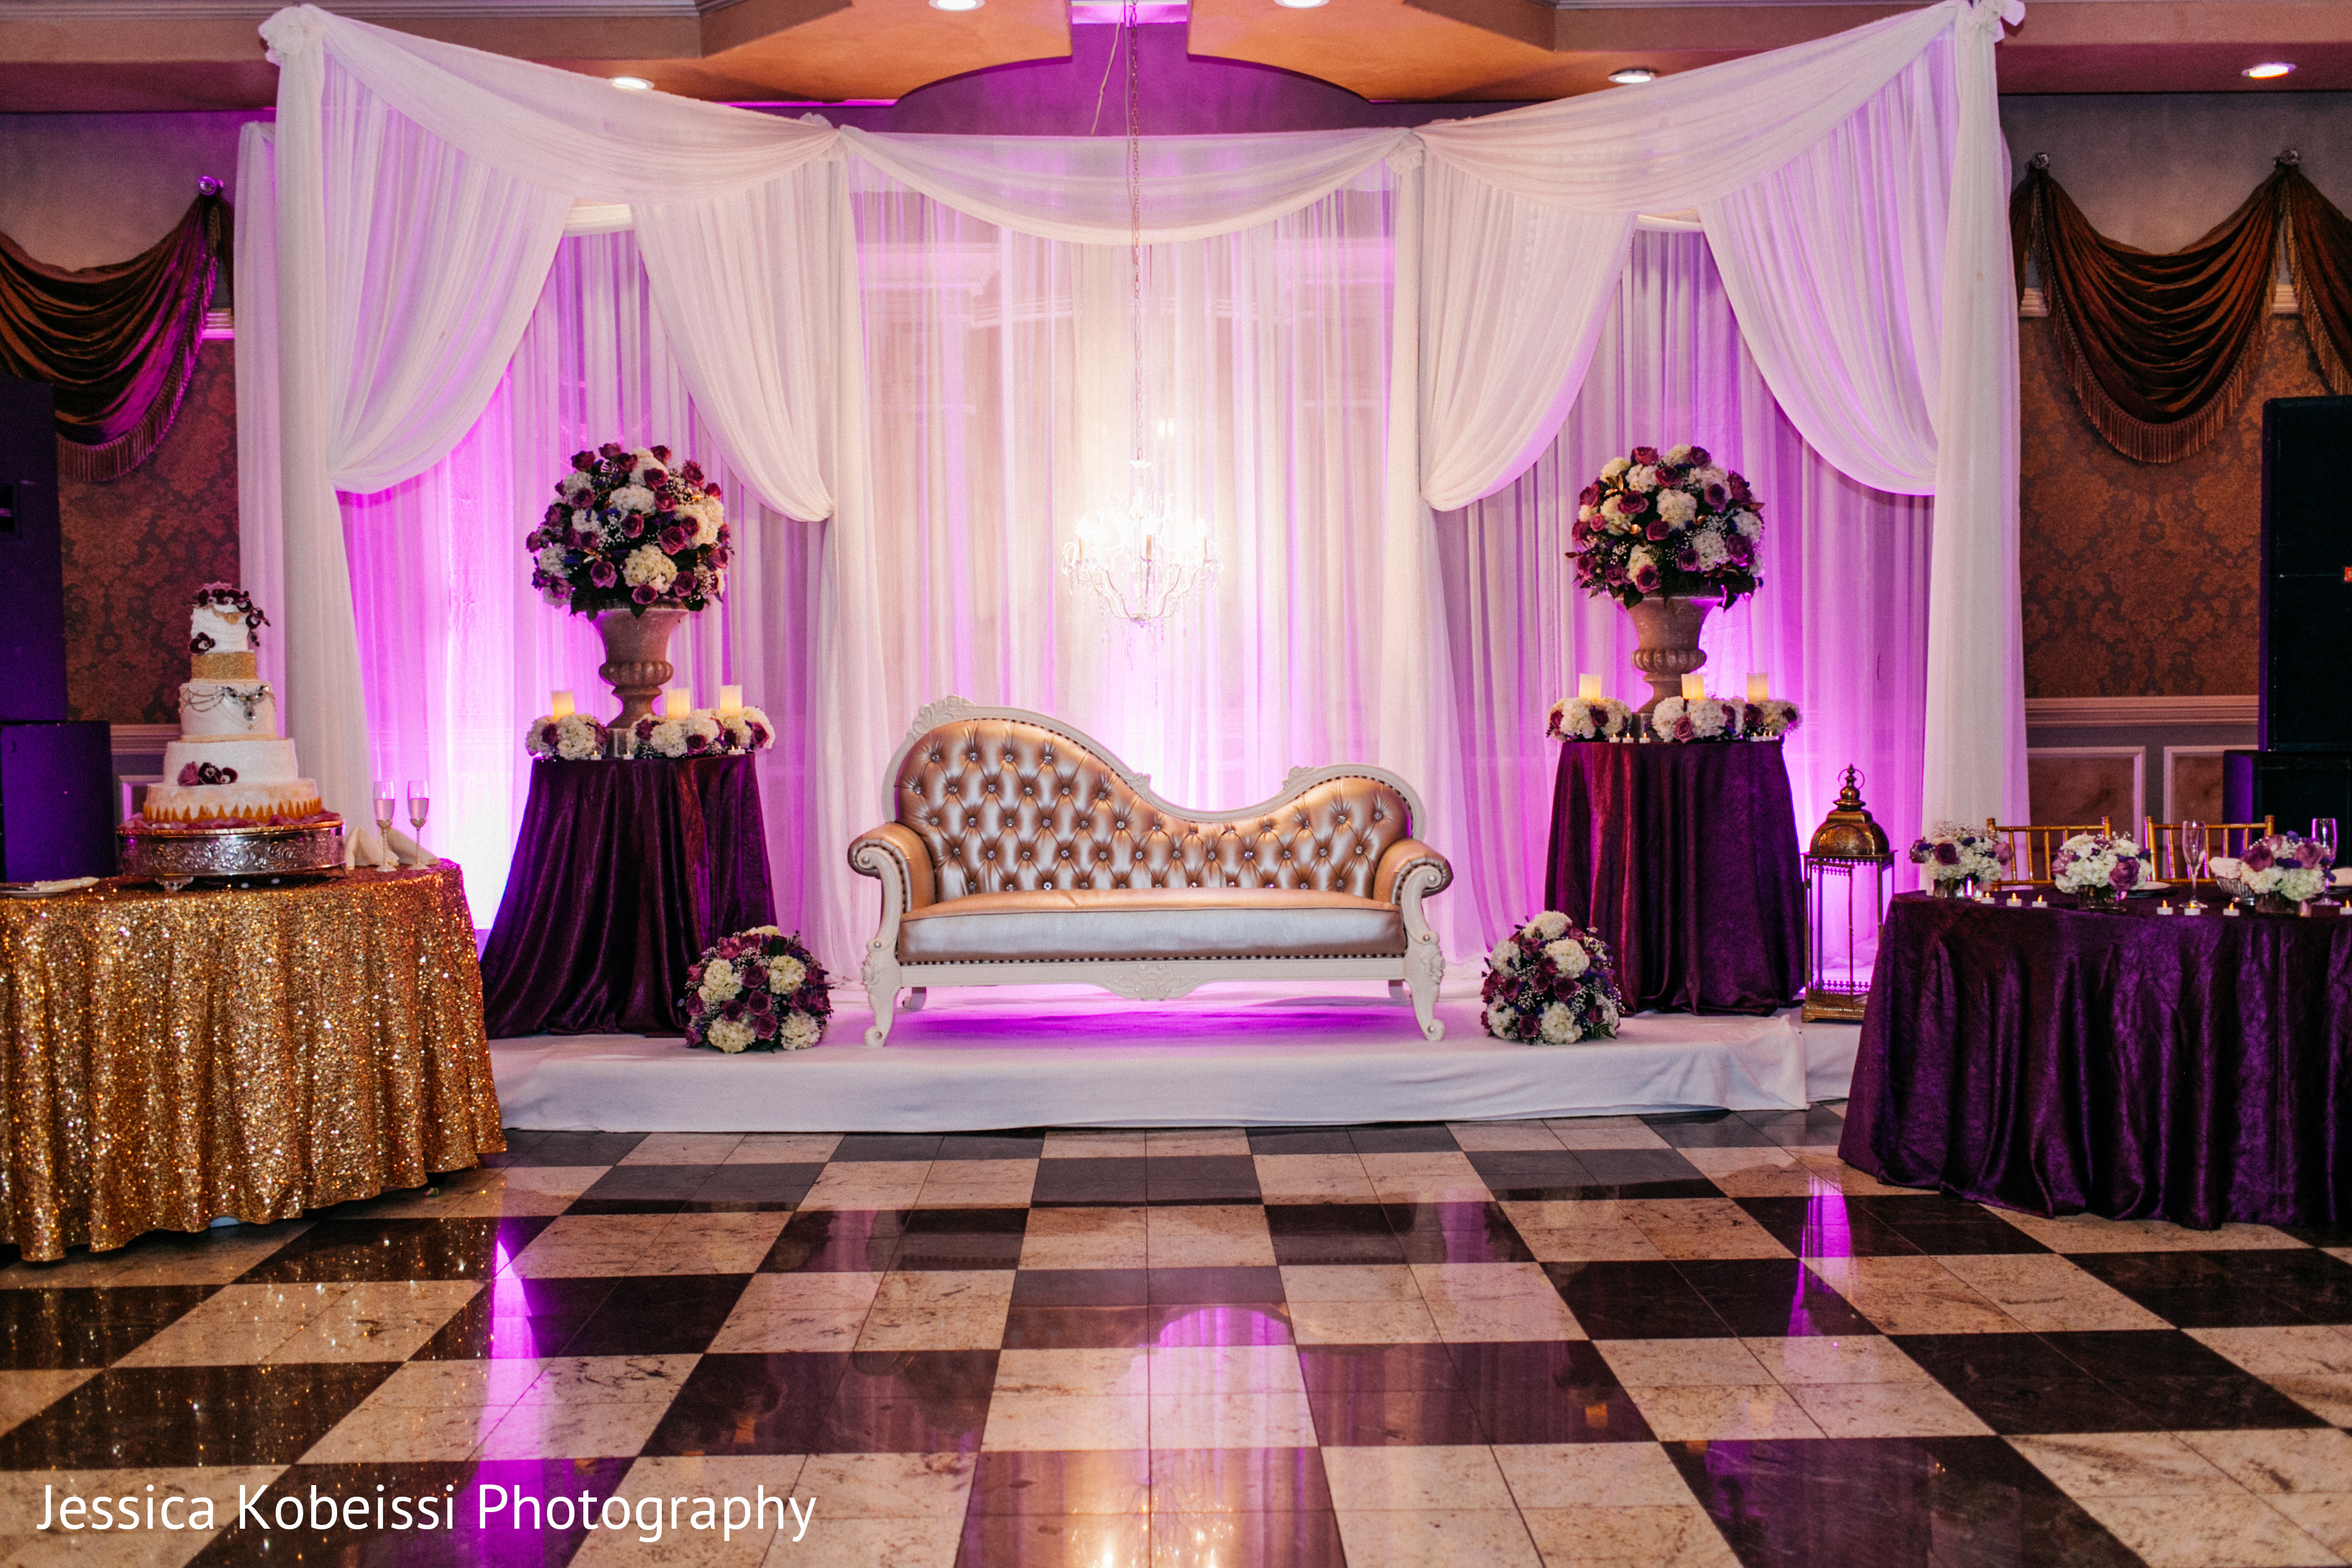 Indian wedding reception floral and decor | Photo 67822